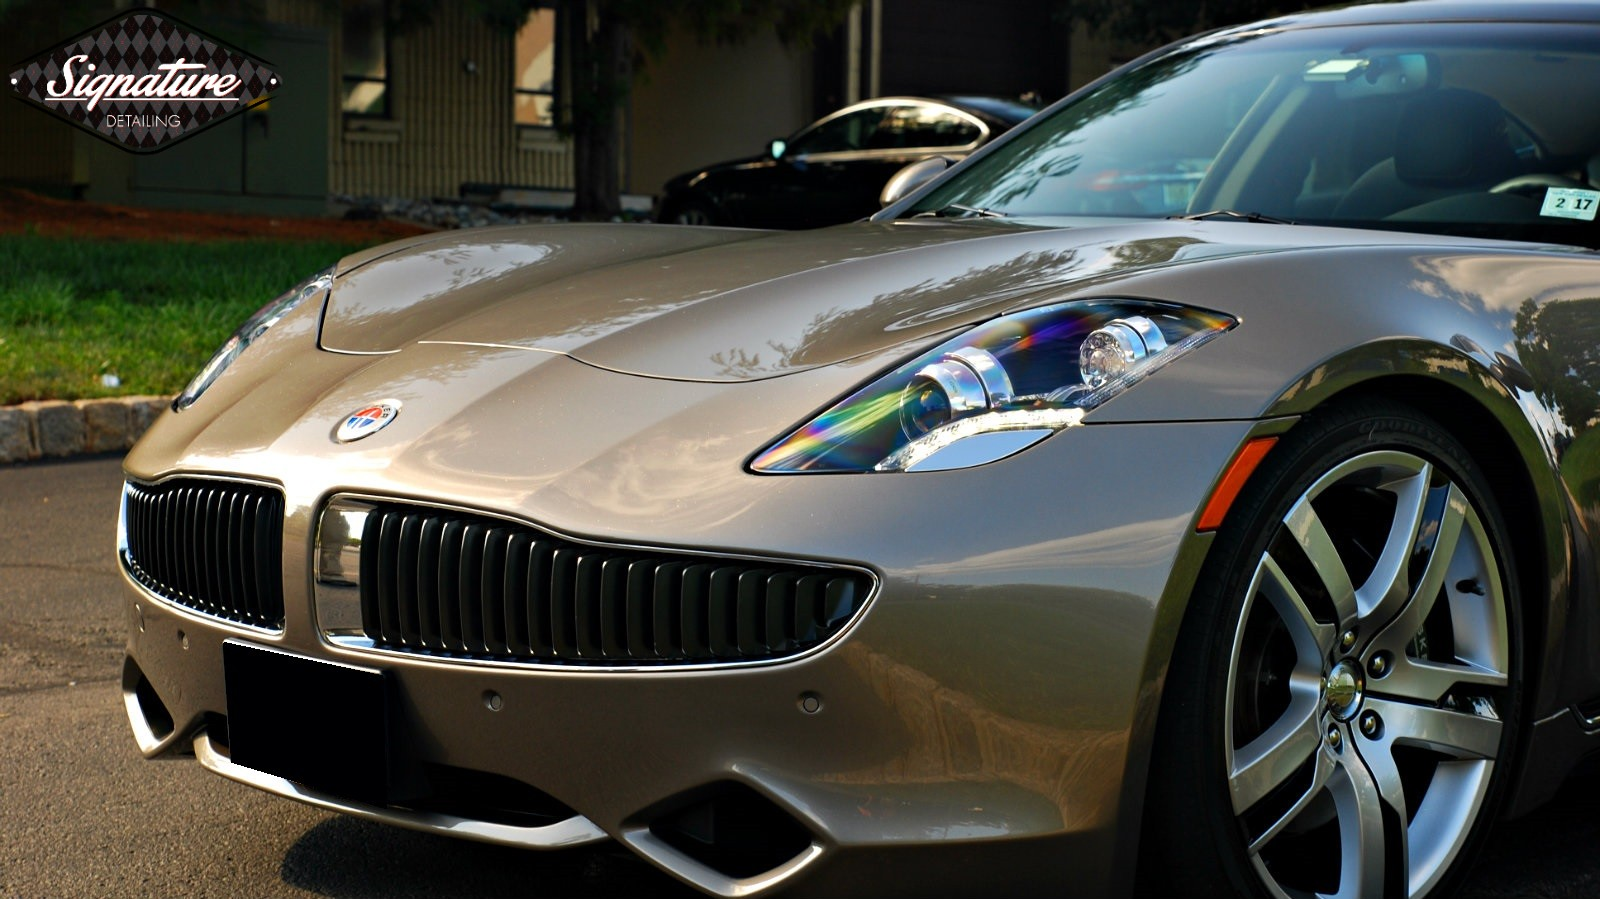 This Fisker Karma was fully paint corrected and protected with xpel ultimate by signature Detailing NJ.